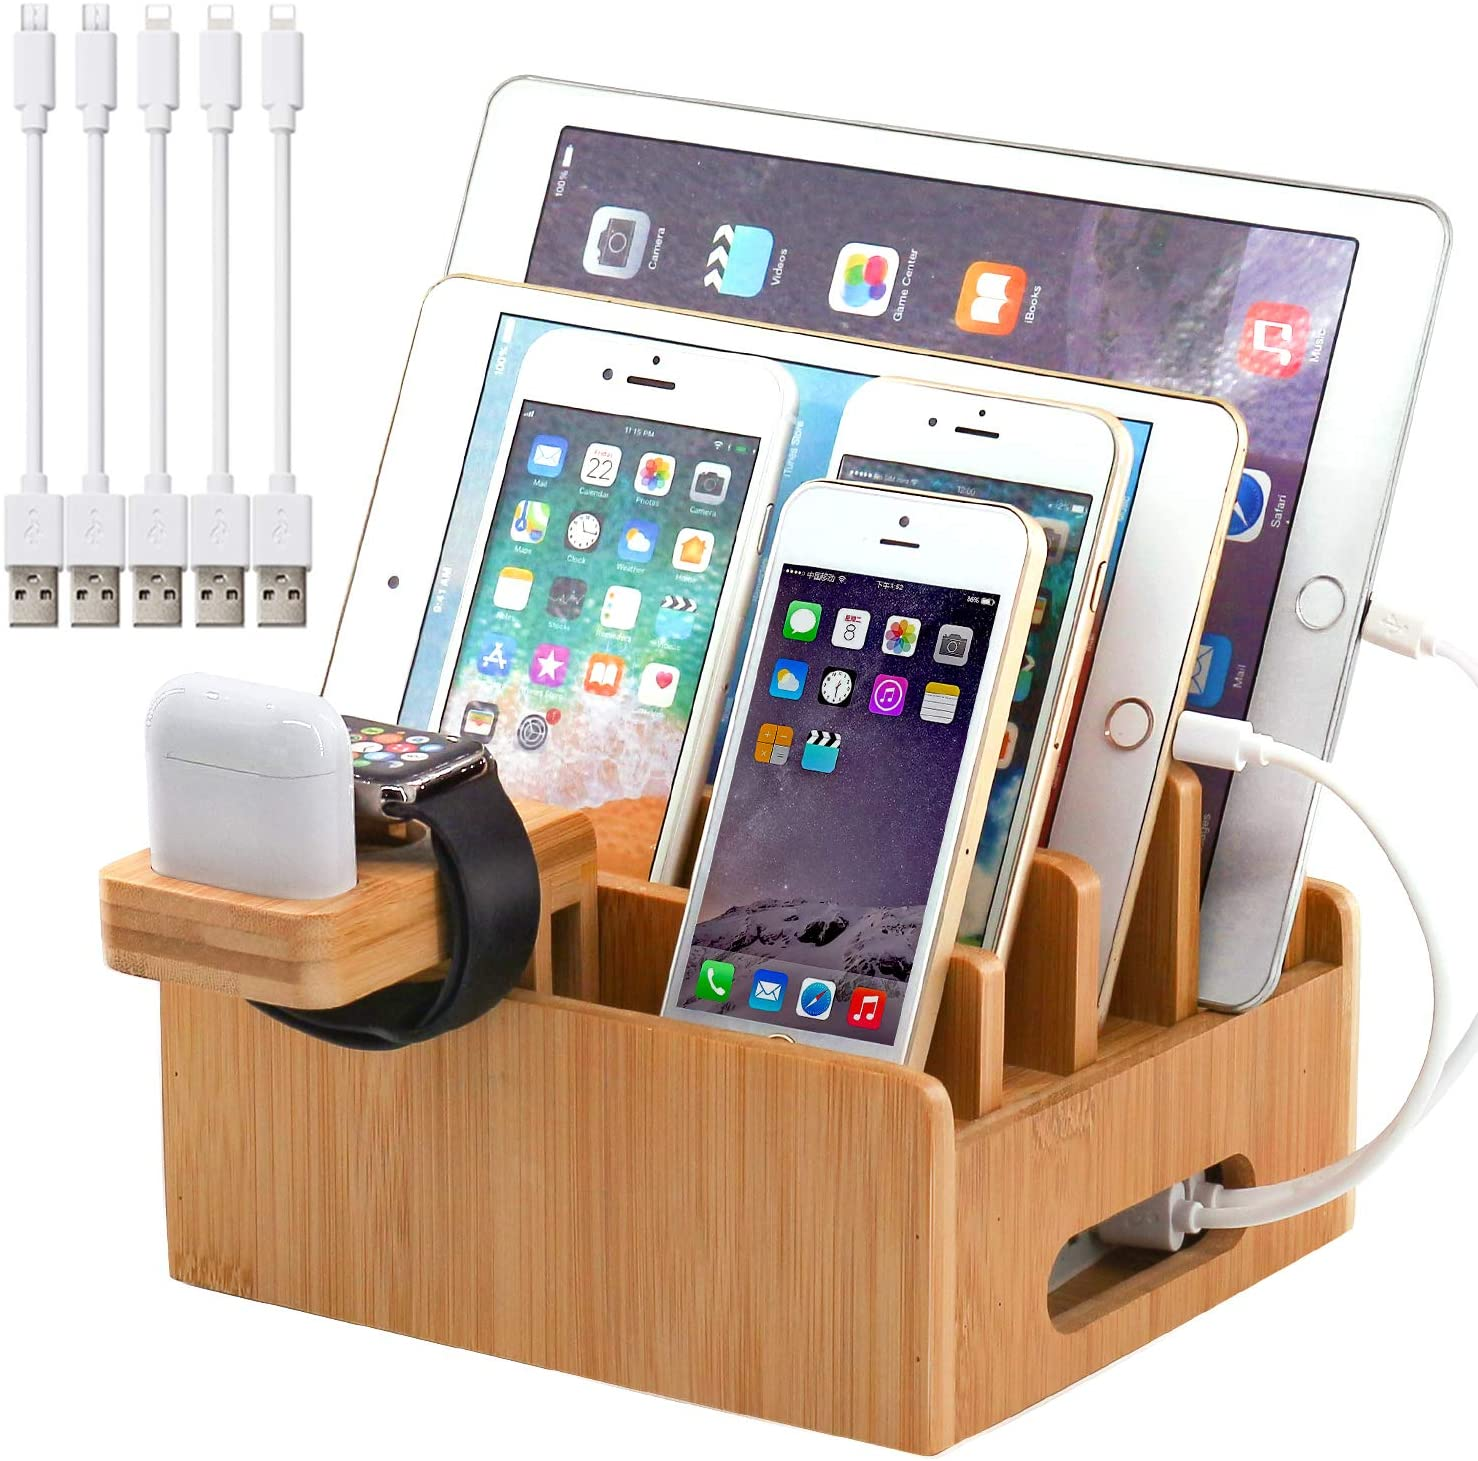 Bamboo Wood Charging Station - WorkwearToronto.com - Christmas Gift Ideas for 2020 - Corporate Gifts - Amazon